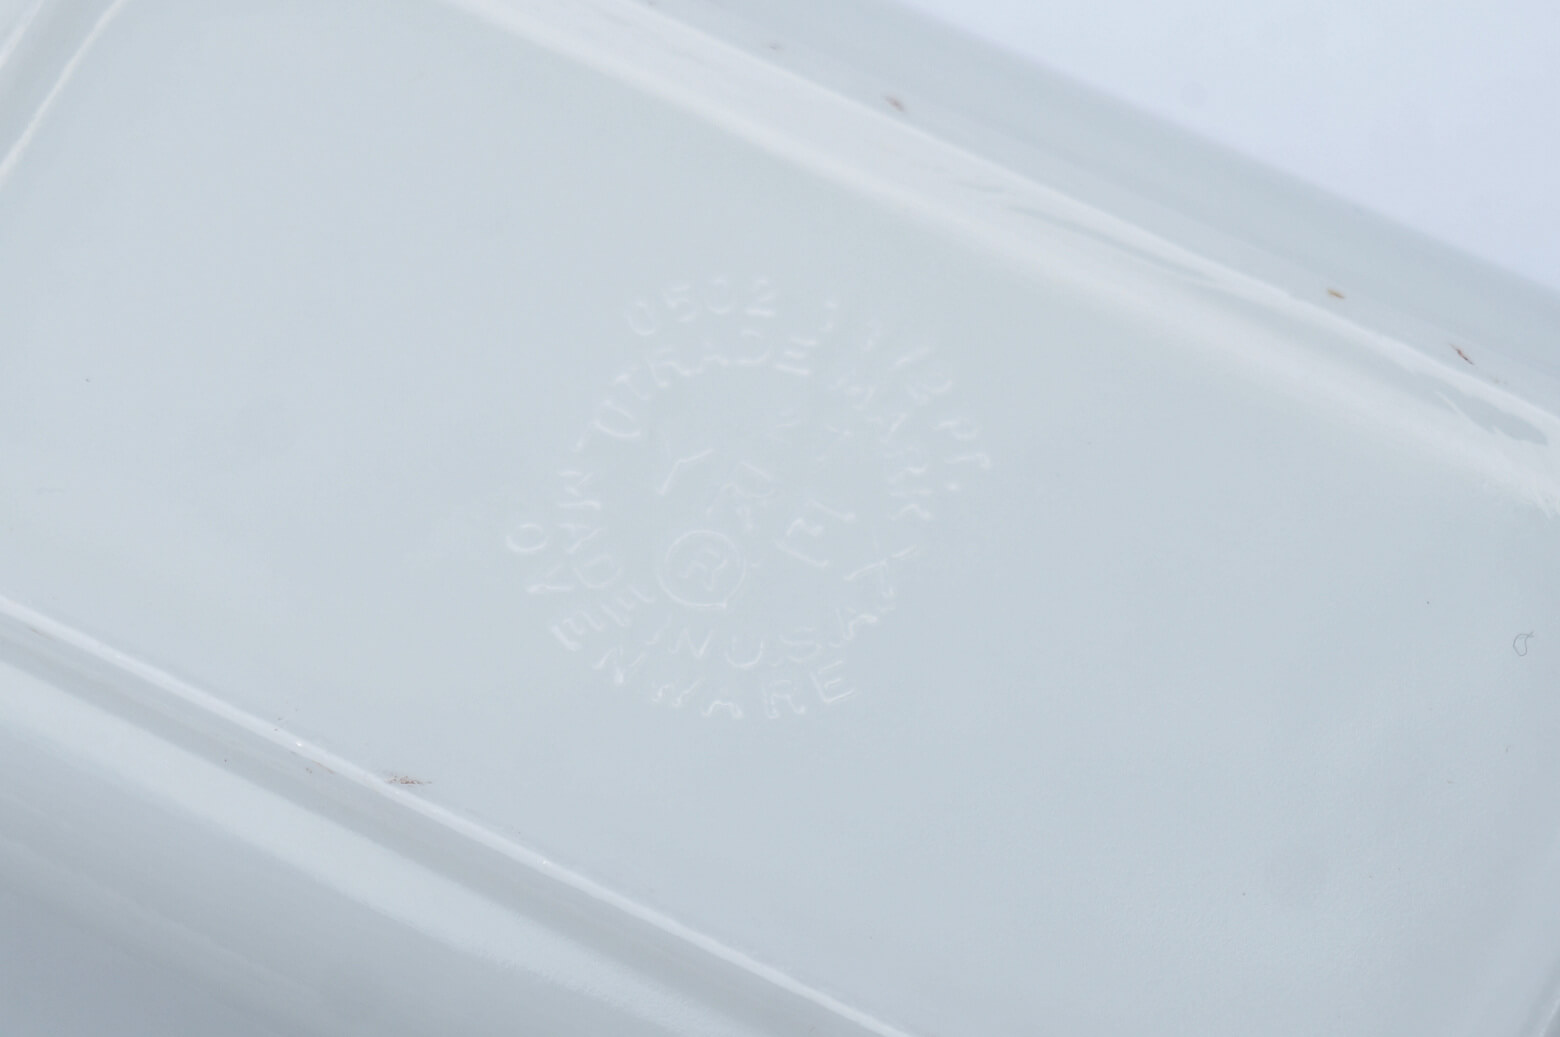 OLD PYREX BUTTER PRINT Refrigerator M size MADE IN USA / オールドパイレックス バター プリント レフリジレーター Mサイズ アメリカ製